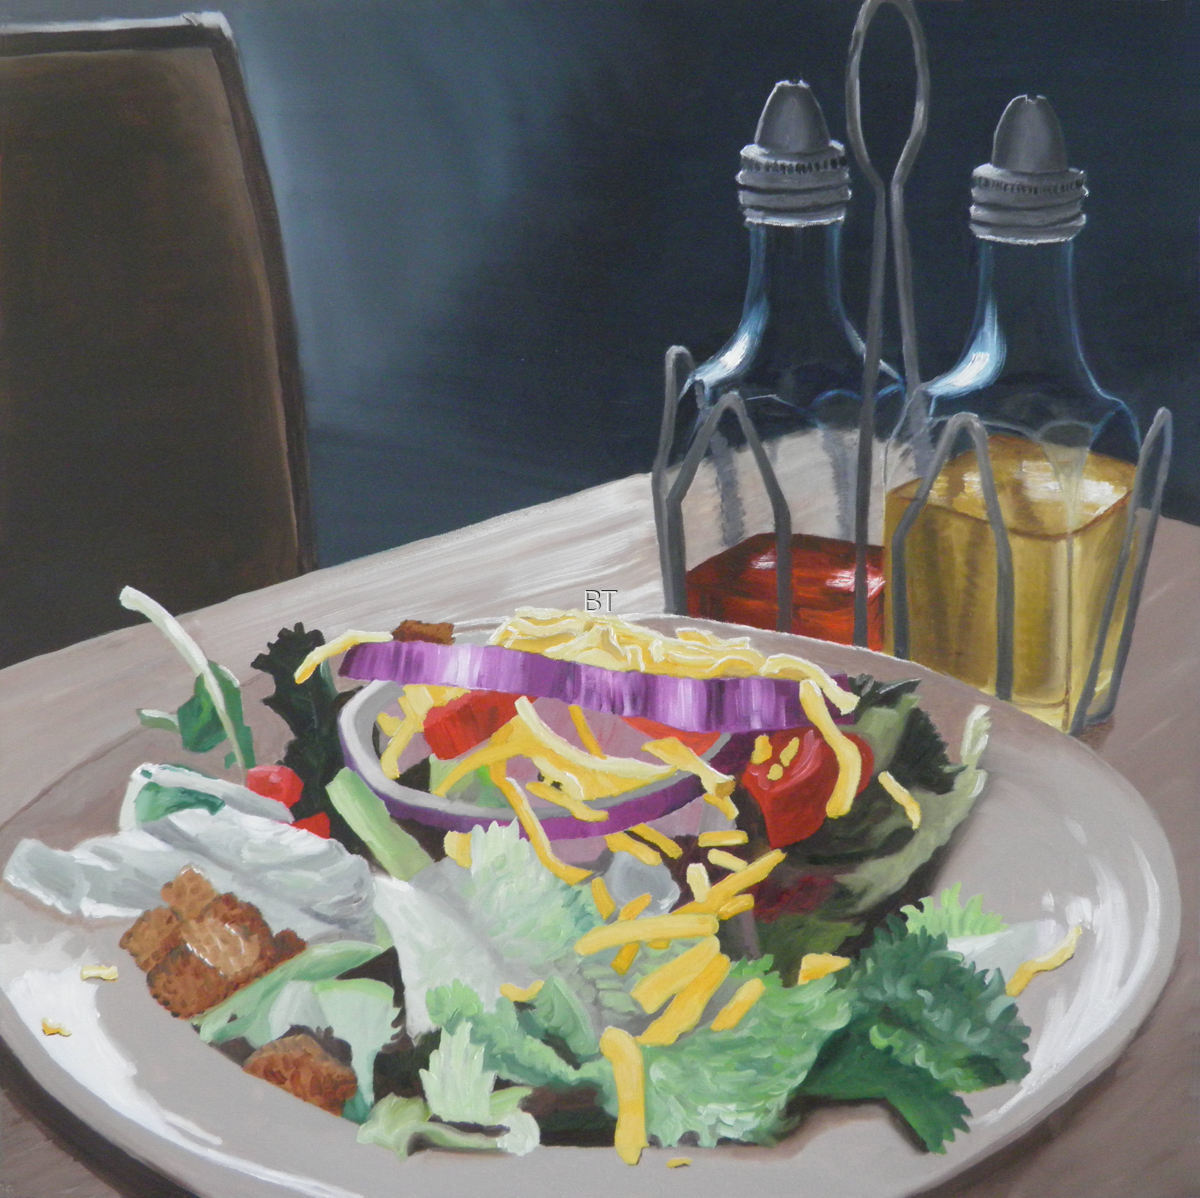 Oil & Vinegar Salad (large view)